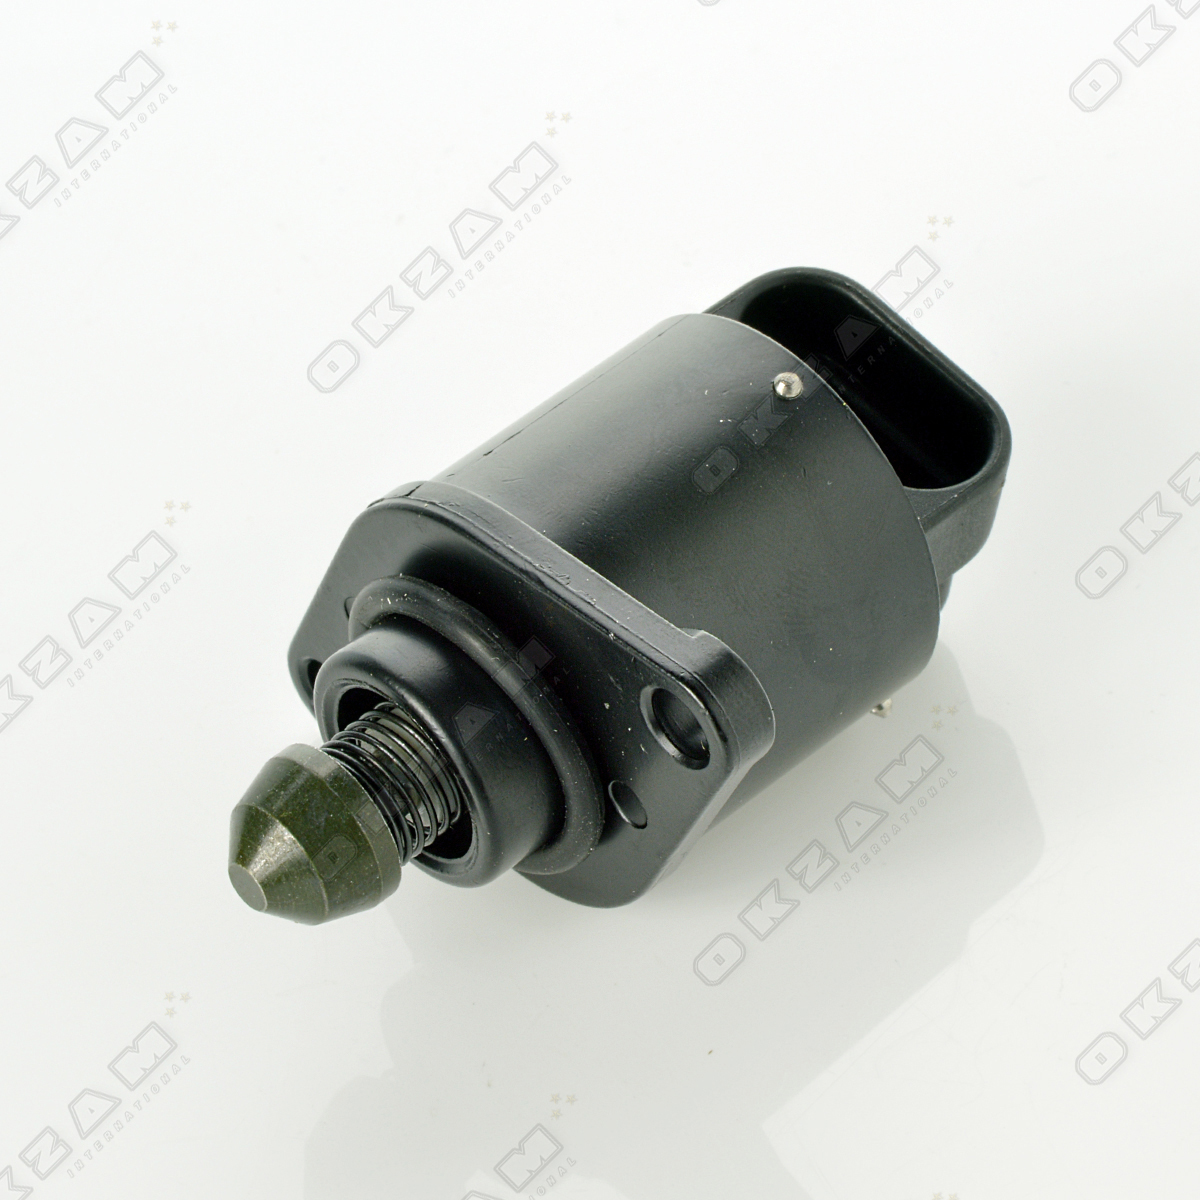 1x idle control valve suitable for citroen xantia x2 16v 1920 v7 new ebay. Black Bedroom Furniture Sets. Home Design Ideas